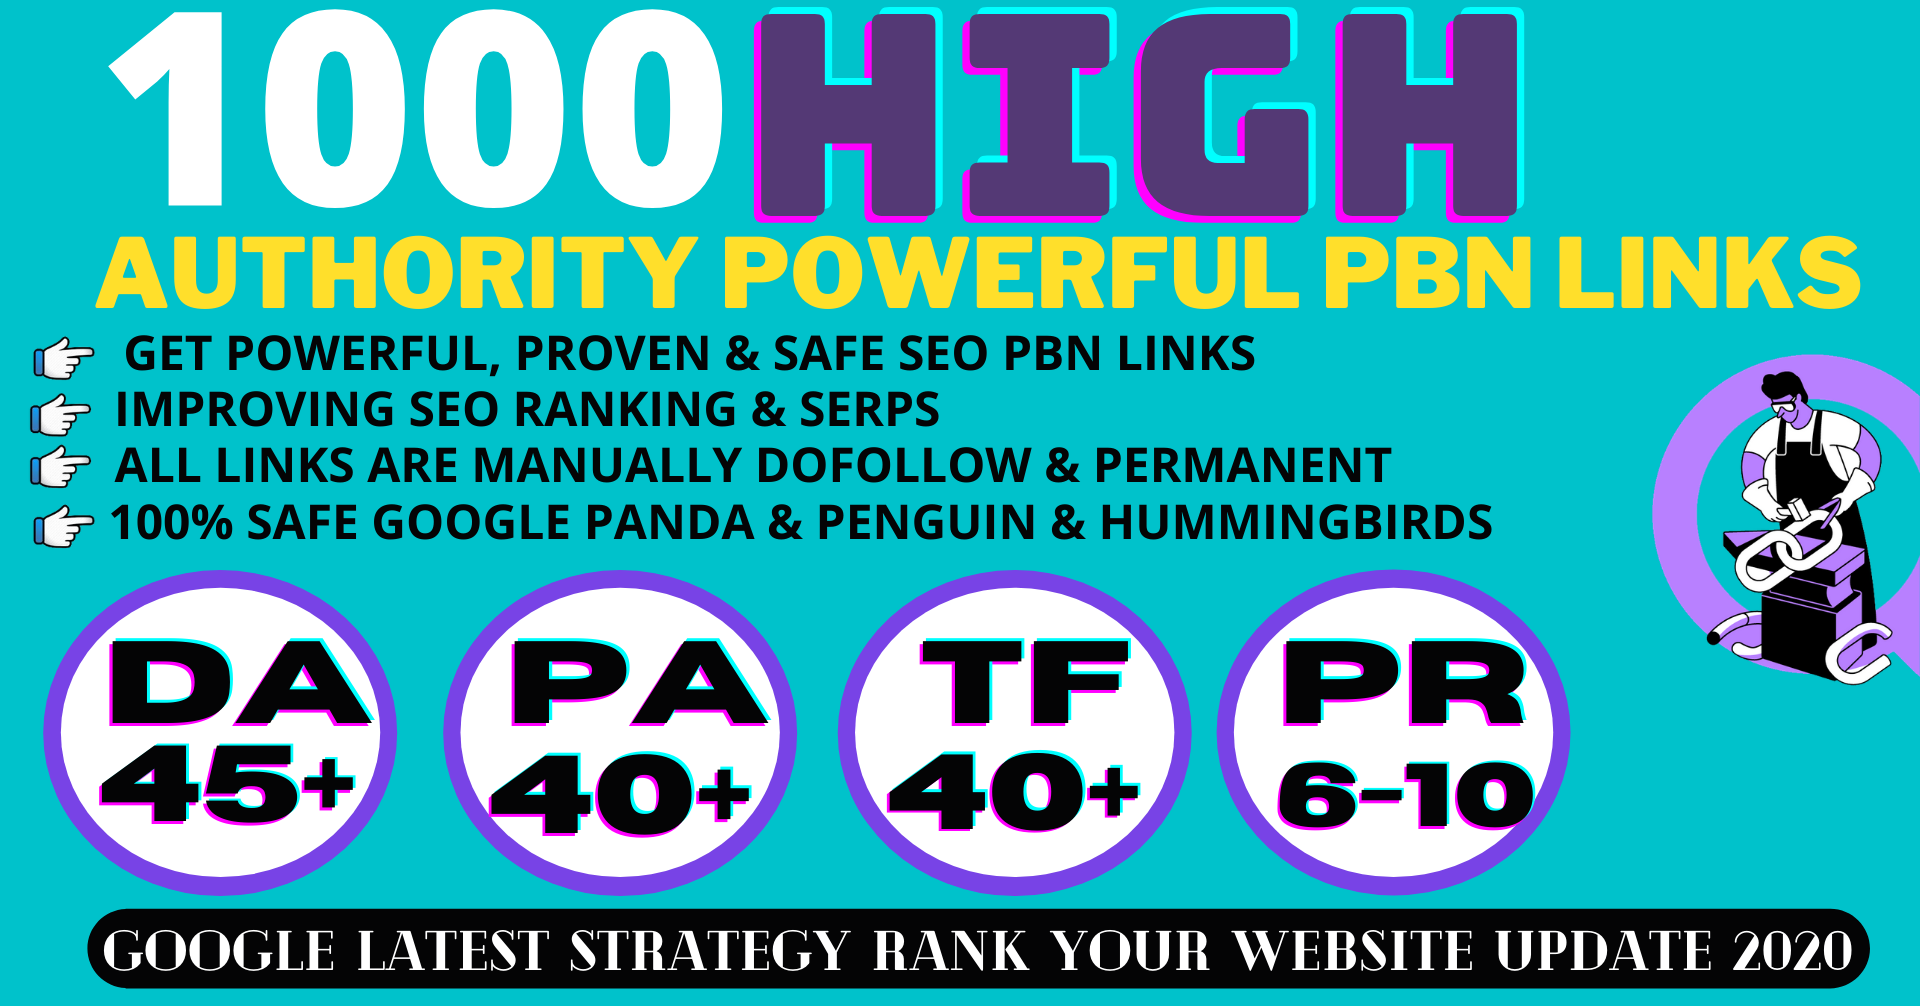 build 1000+ Permanent PBN Backlinks Web2.0 With High DA45+PA40+PR6+ Links Homepage Unique website